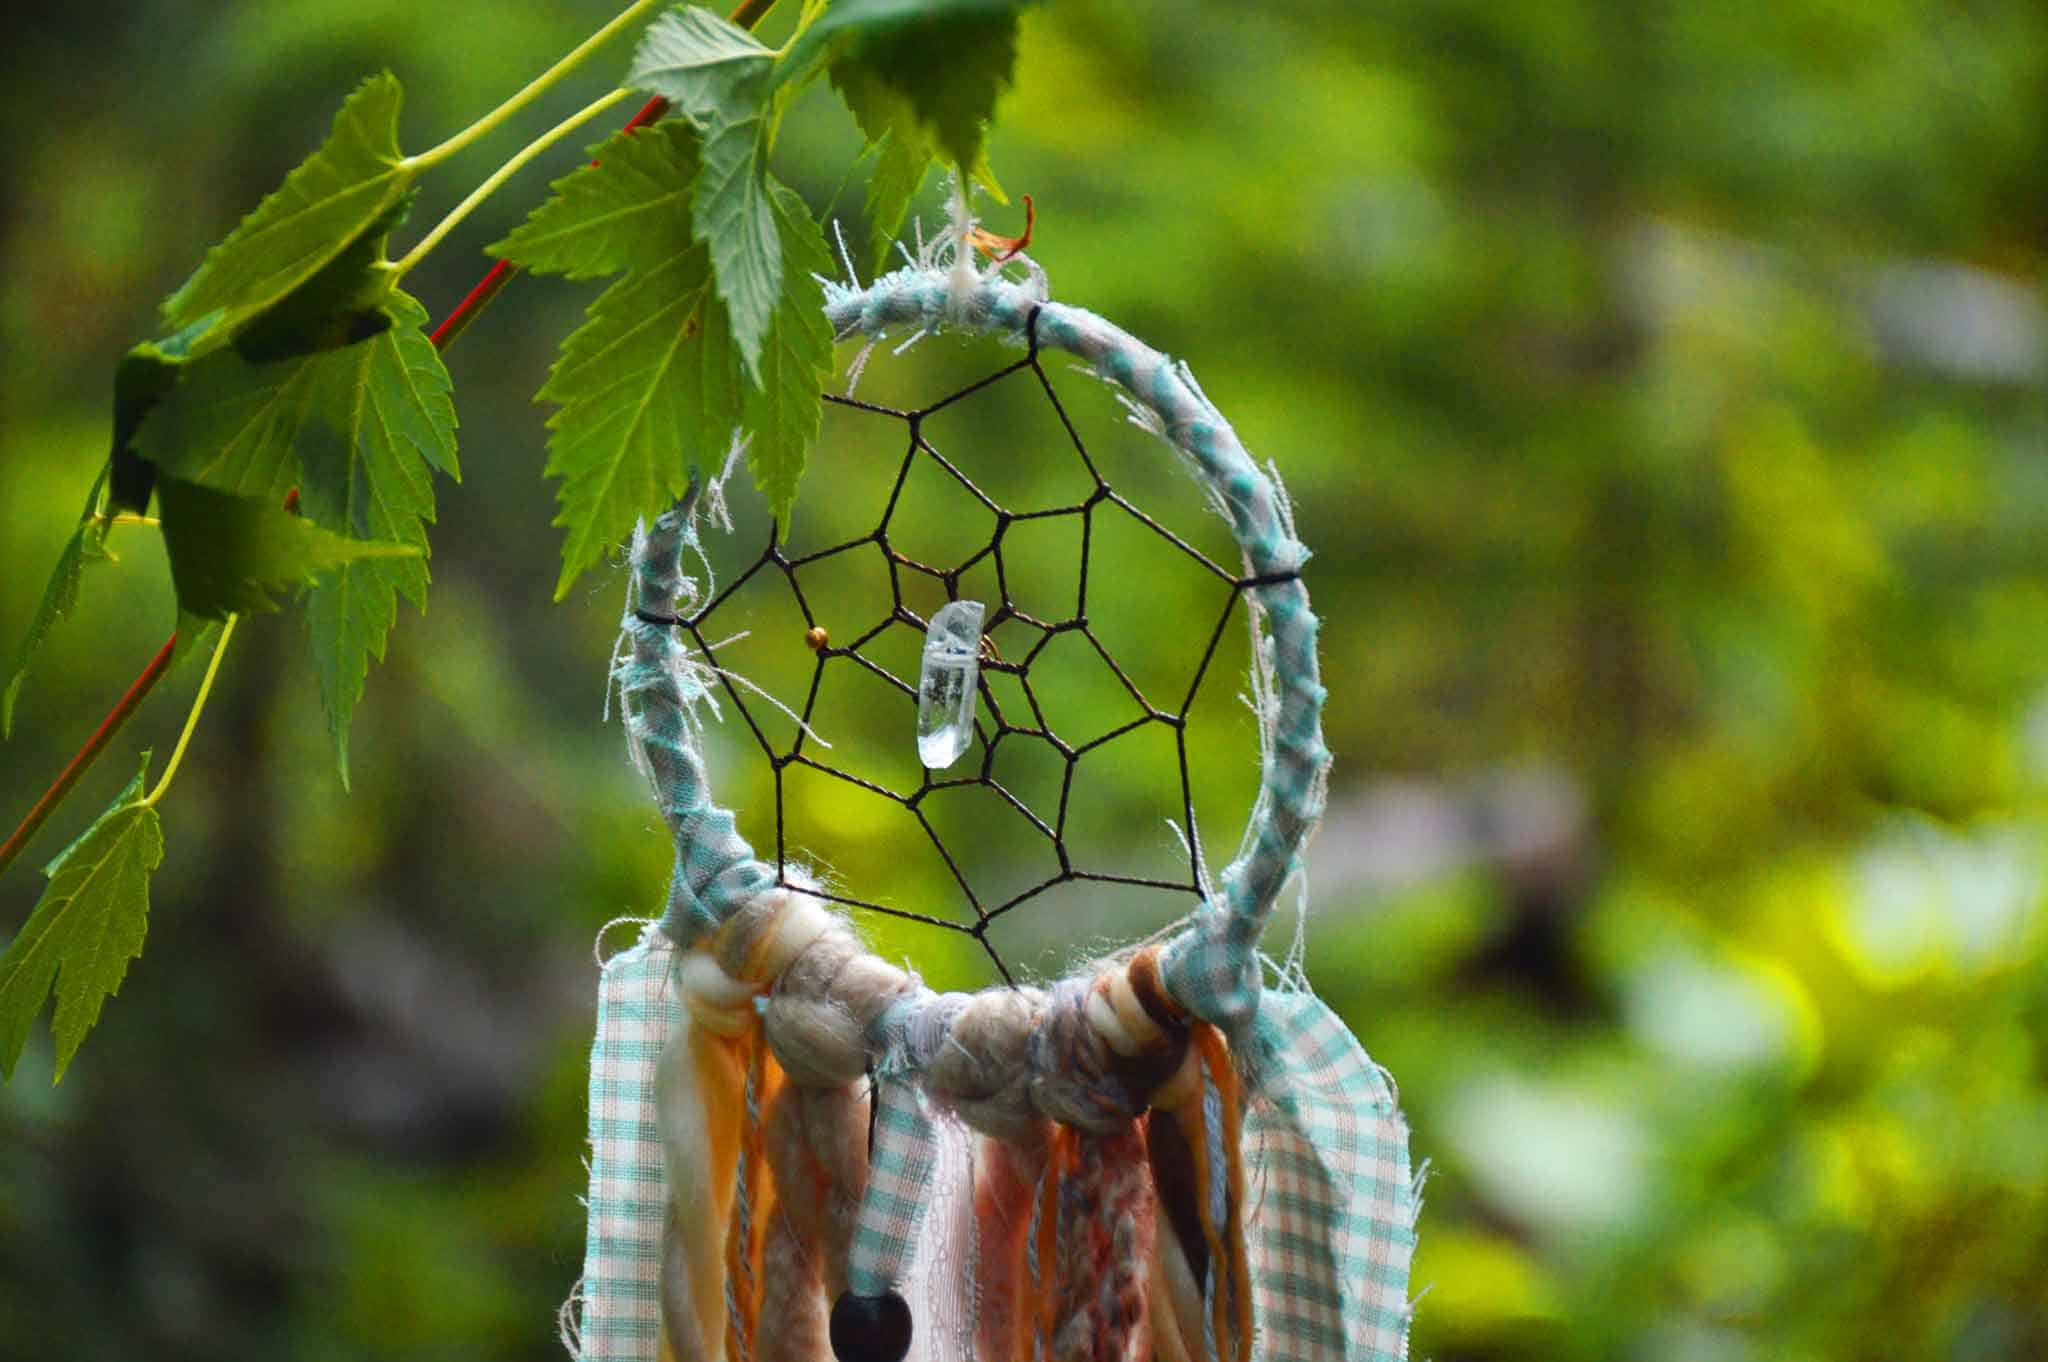 Dreamcatcher hanging in the forest